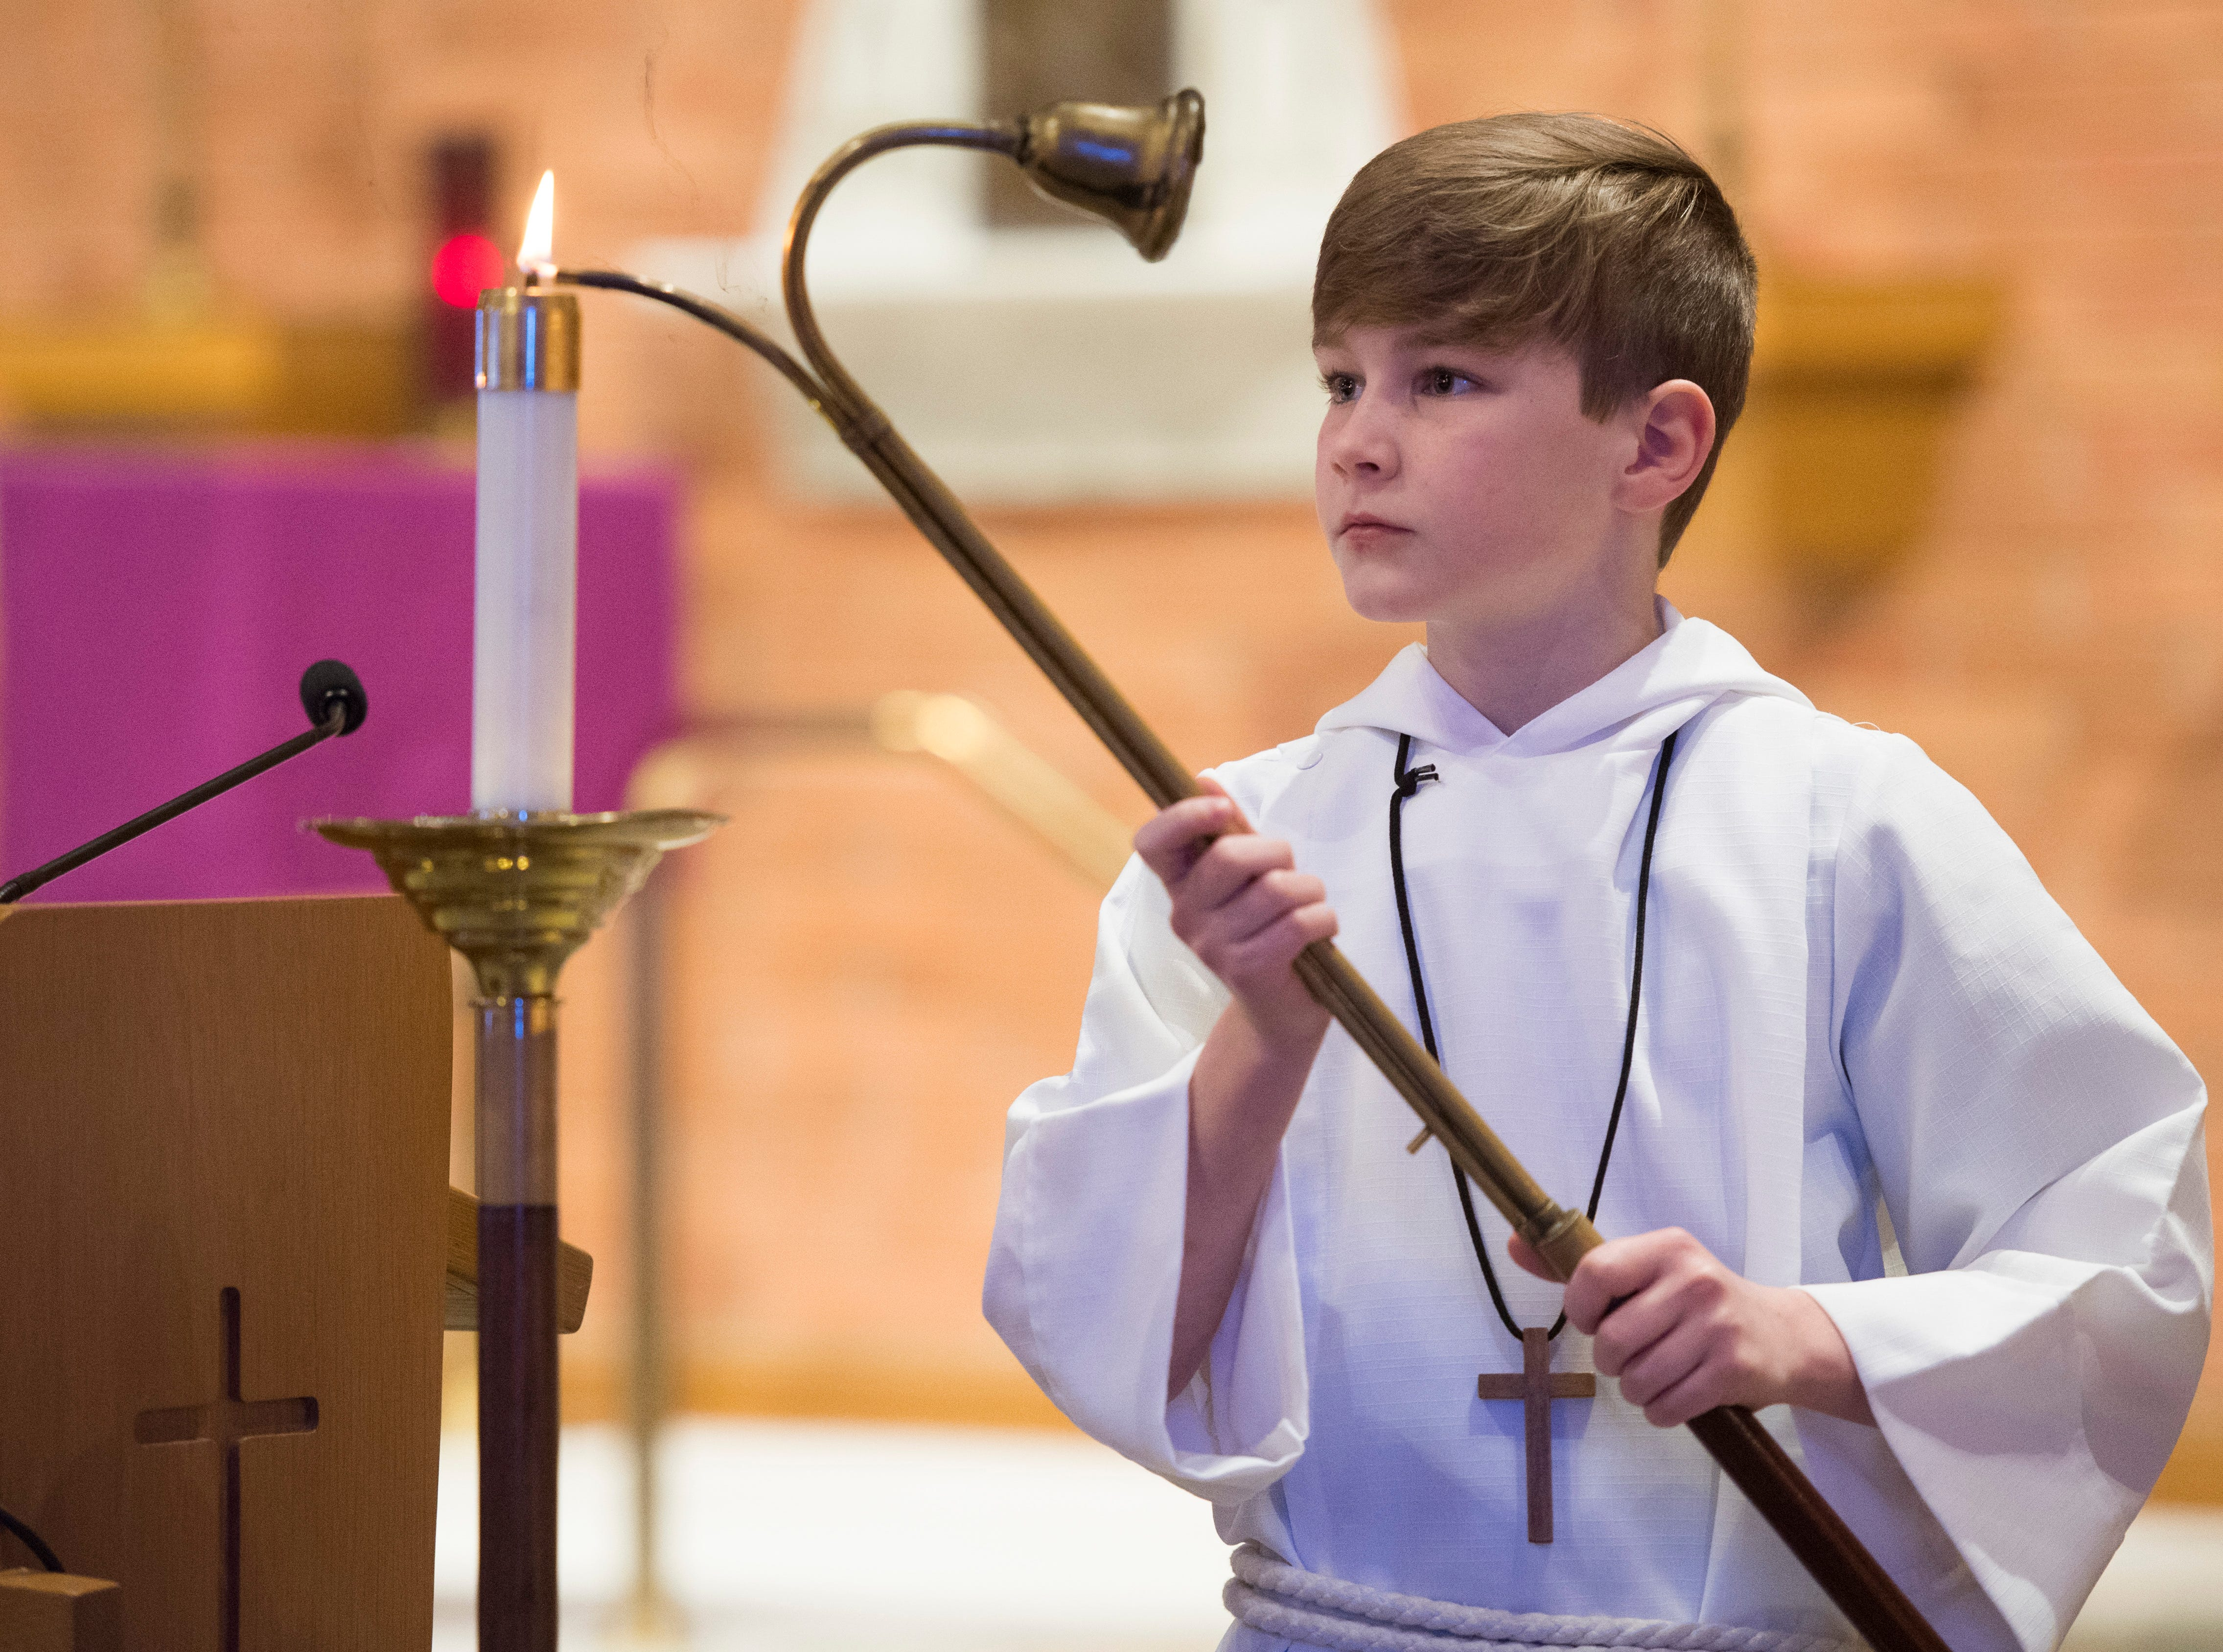 Corpus Christi sixth-grader Caden Willis lights a candle at the alter before the Ash Wednesday Mass Wednesday, March 6, 2019.